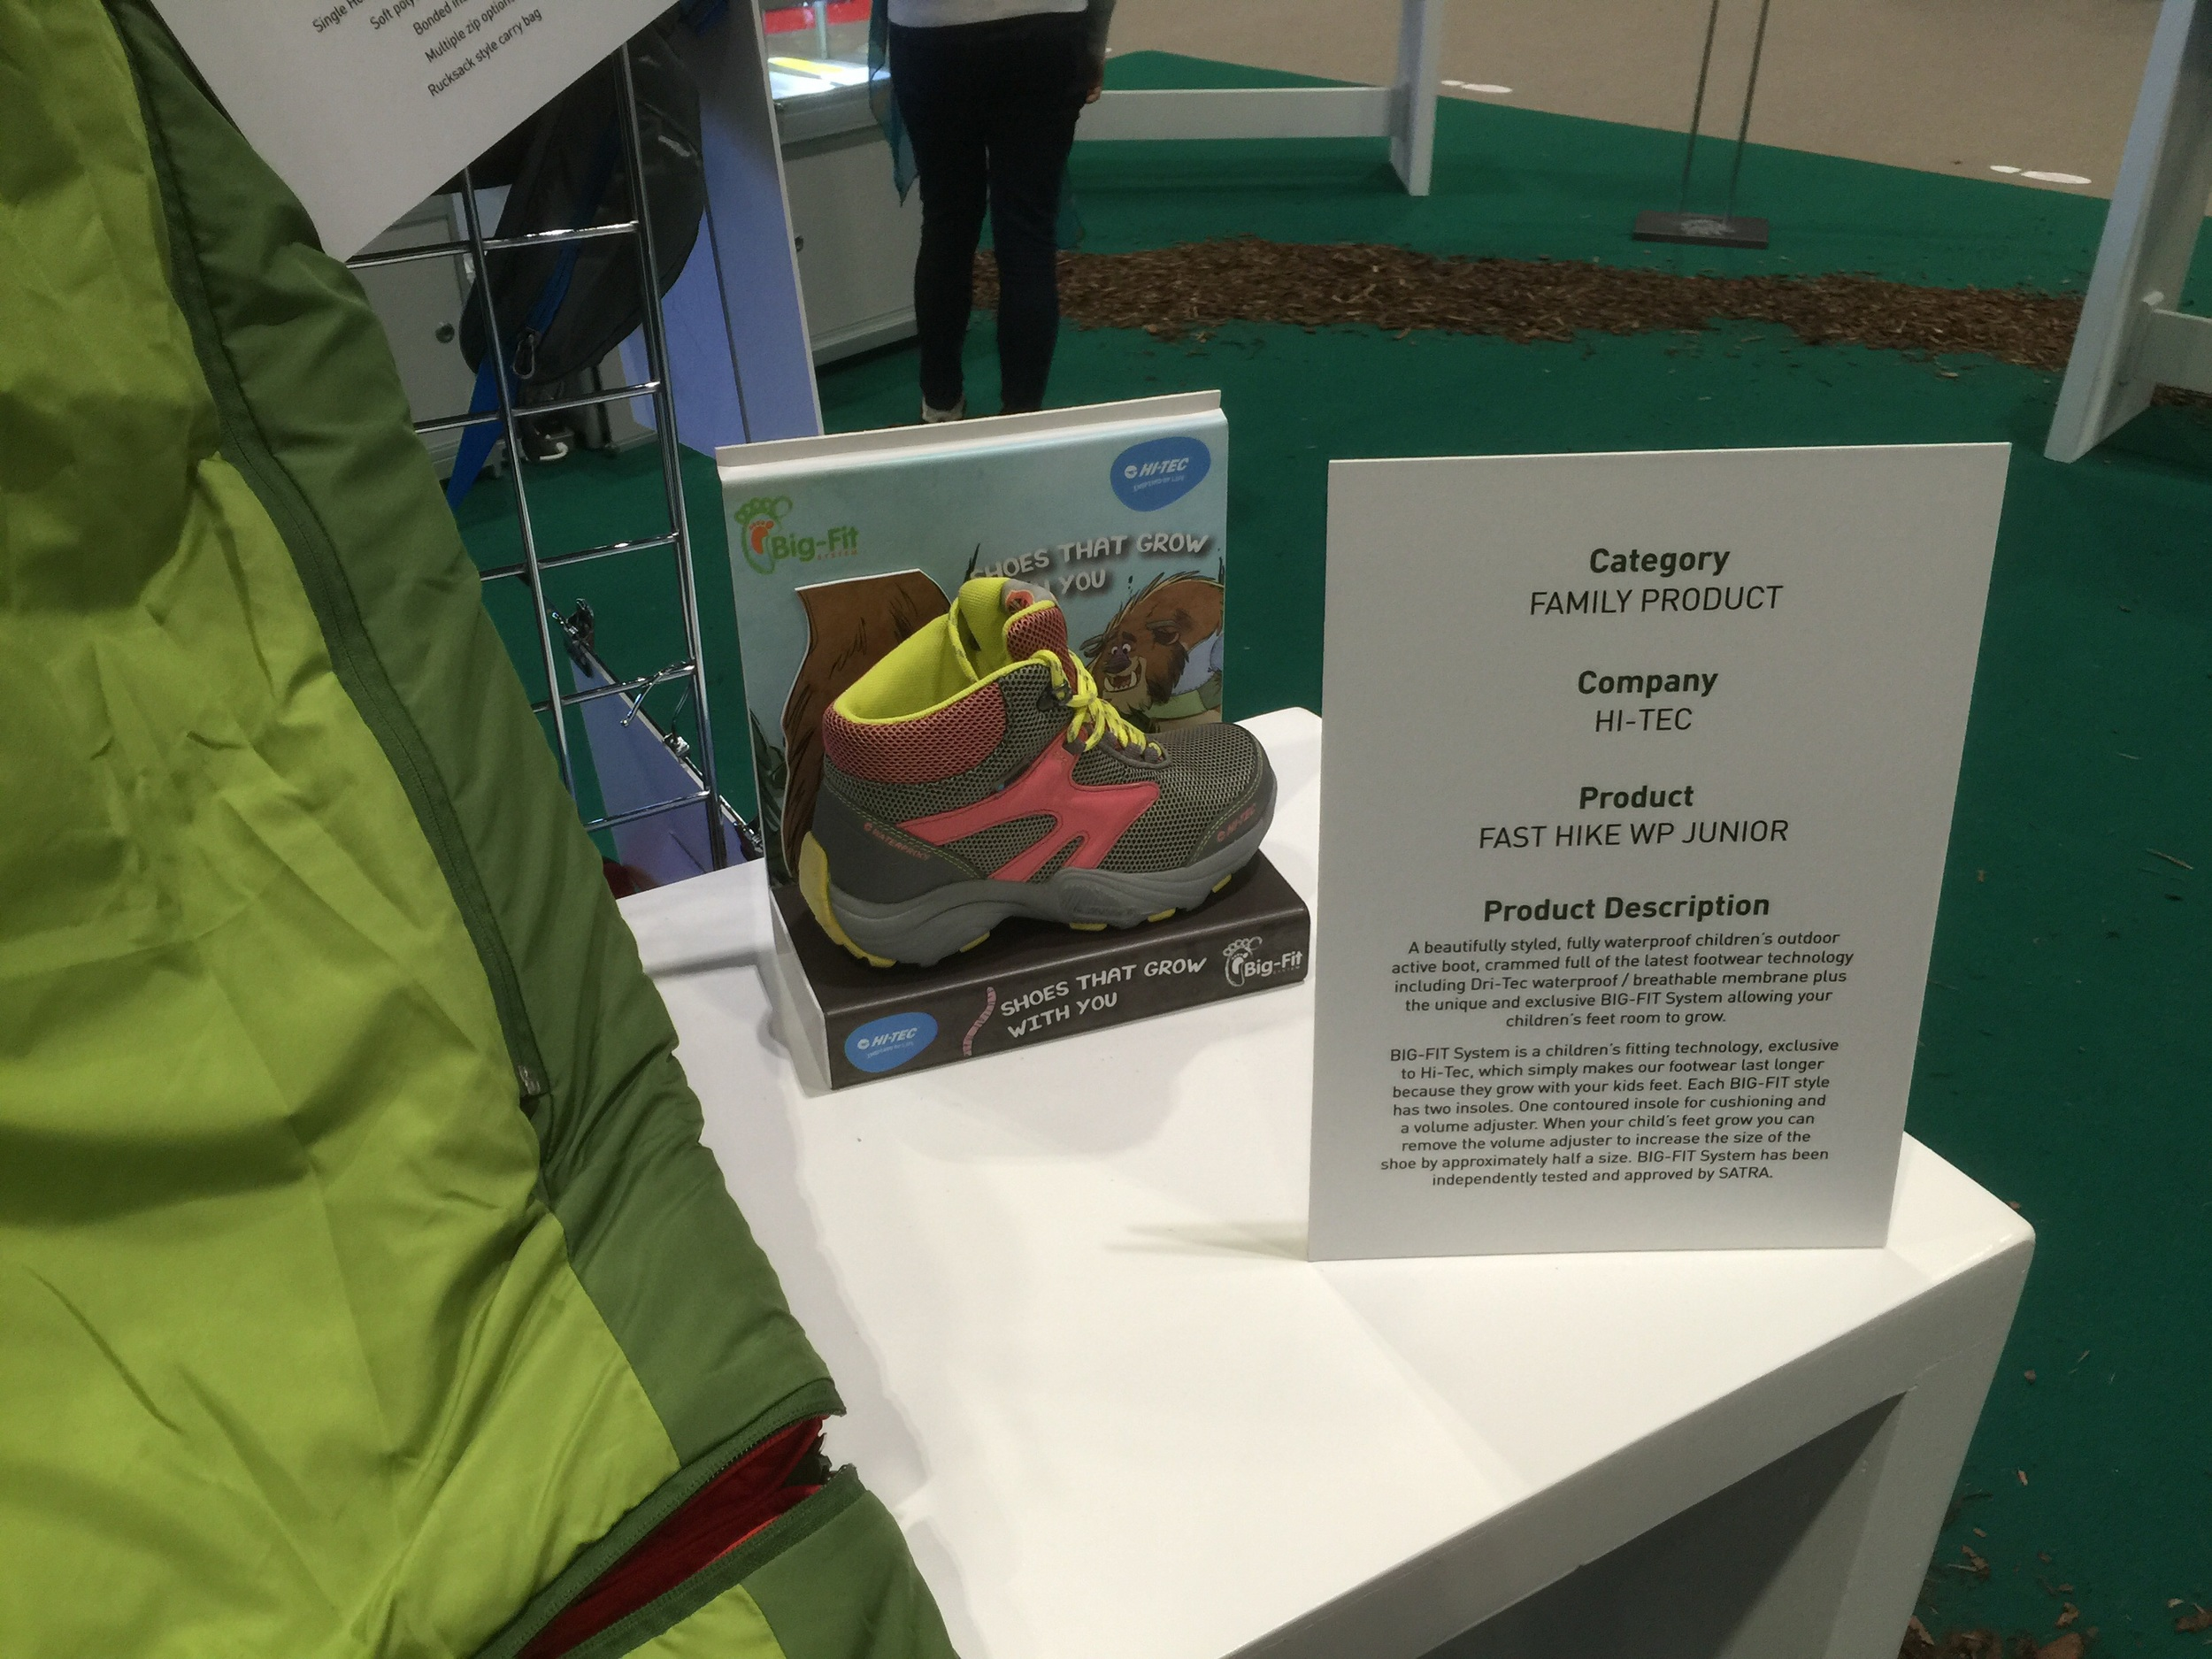 Hi-Tec's interesting answer to a common conundrum for parents - the need for good boots vs. the cost of ever-growing feet